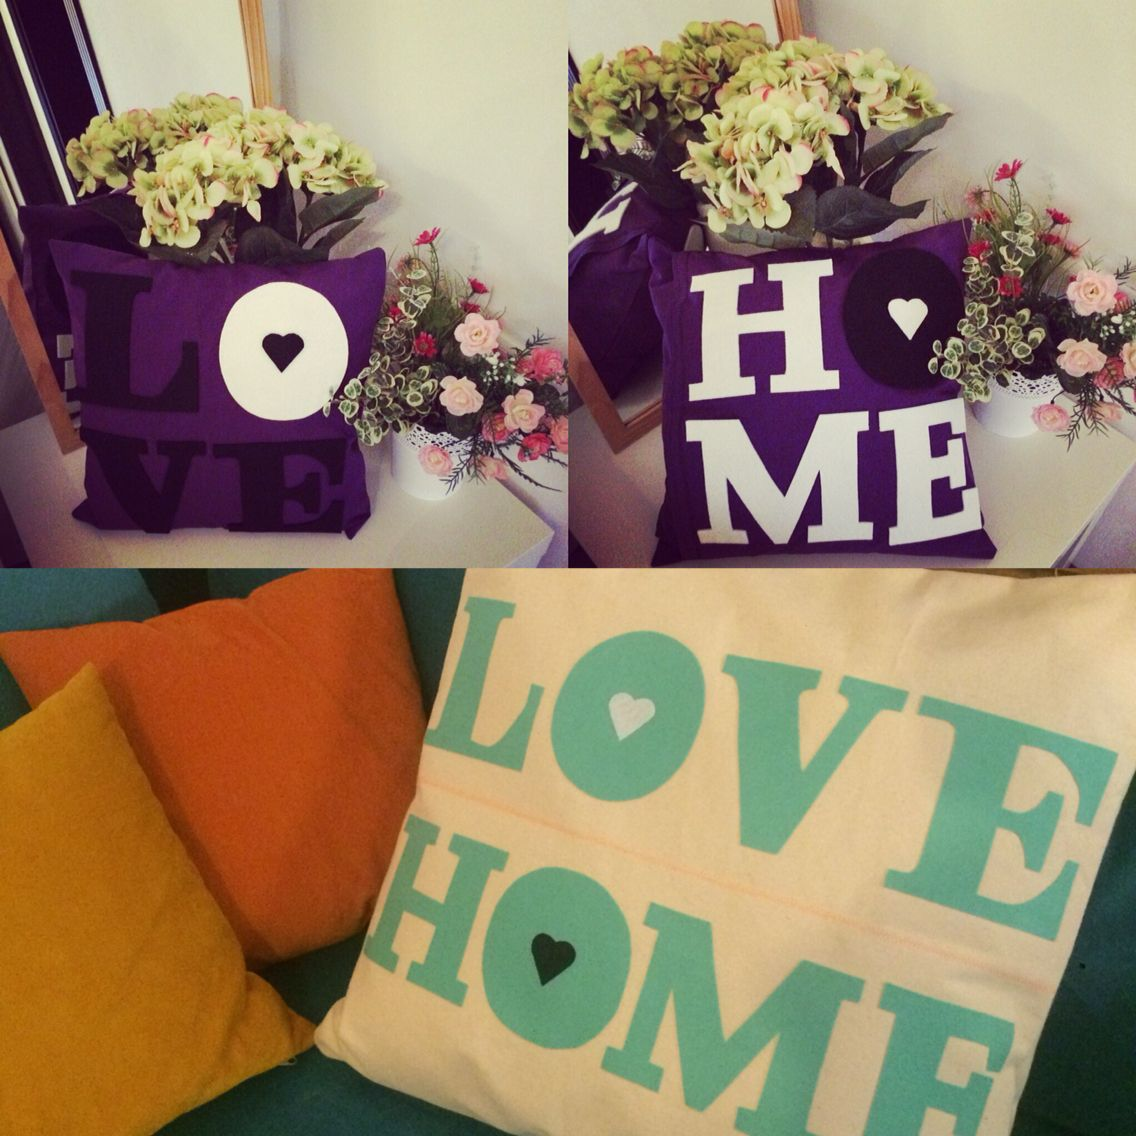 Handmade things for home decoration facebook. Handmade things for home decoration facebook   Home decor ideas